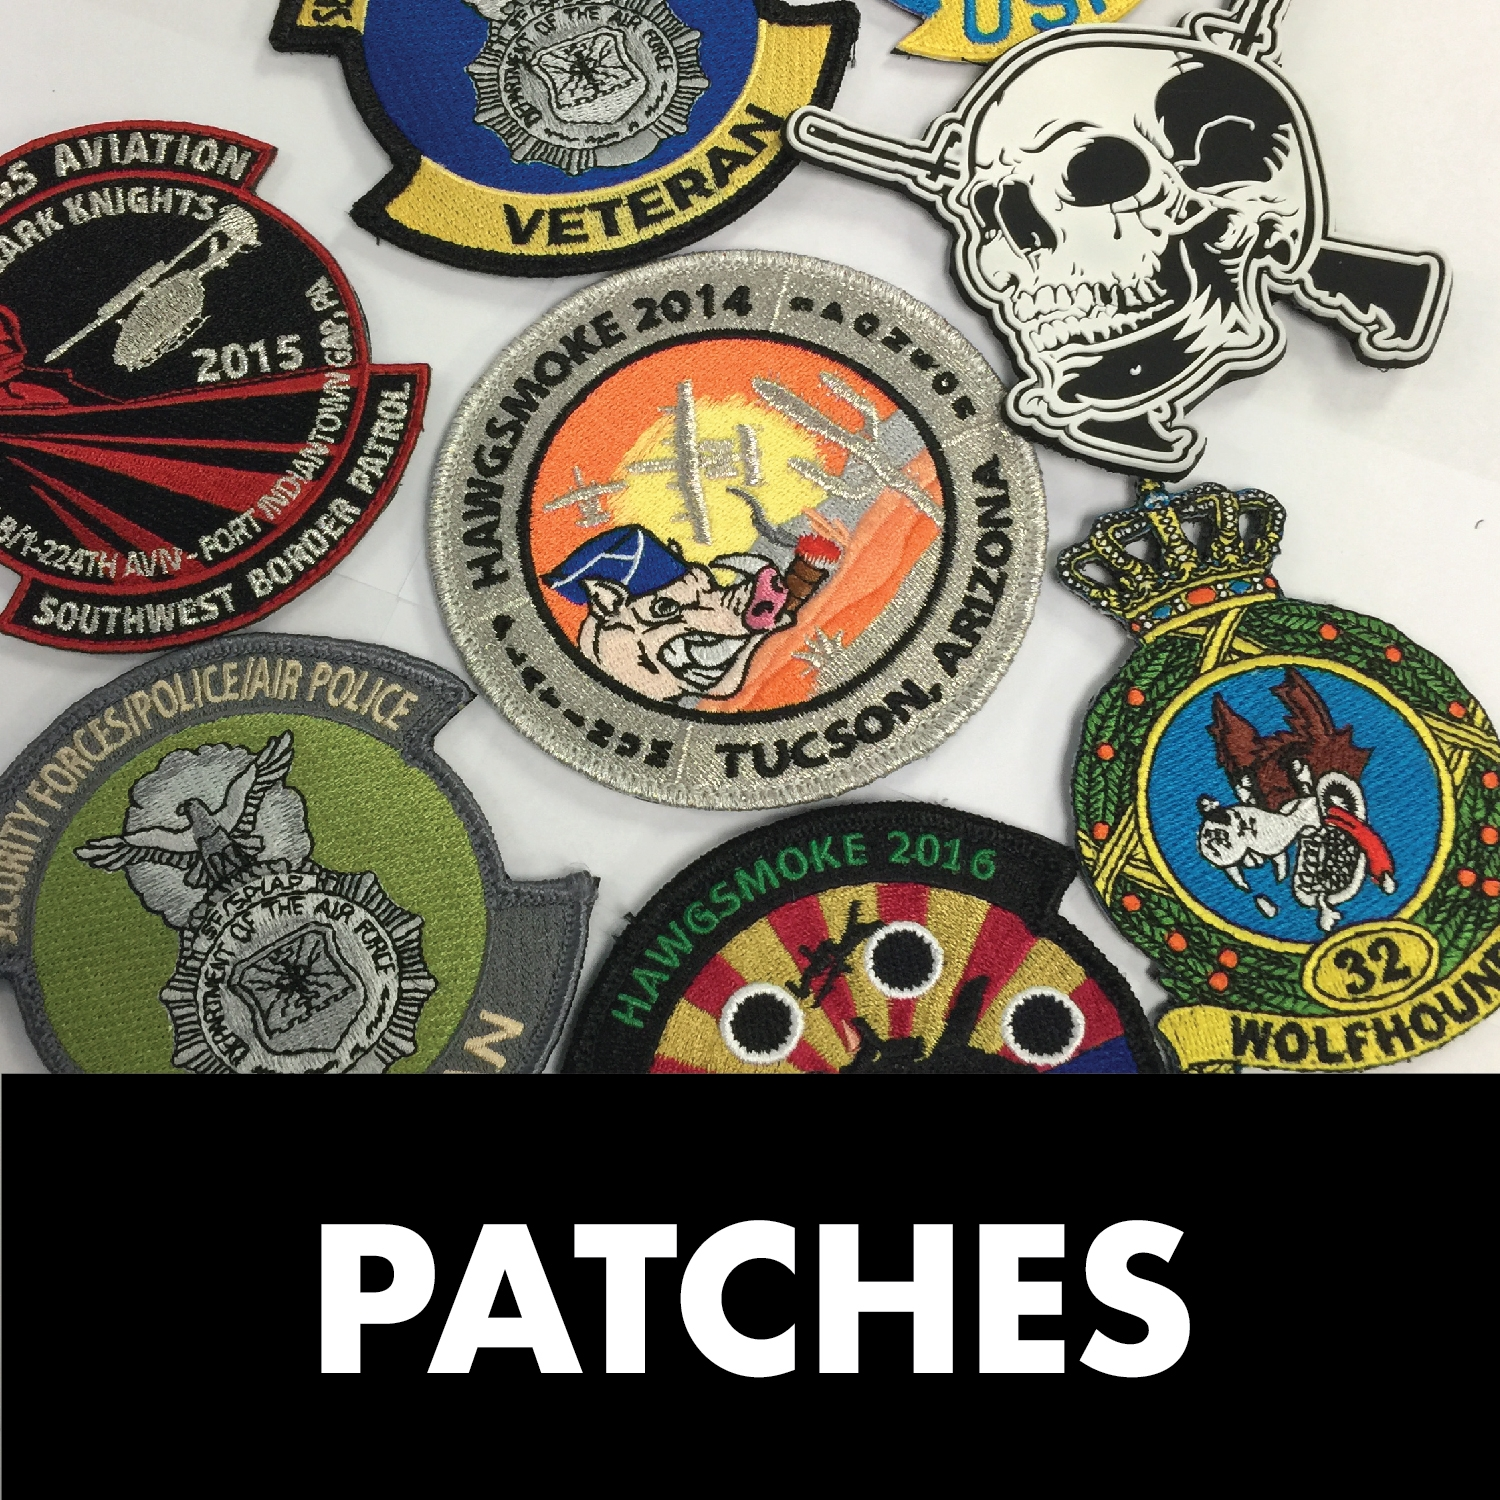 PATCHES-01.jpg